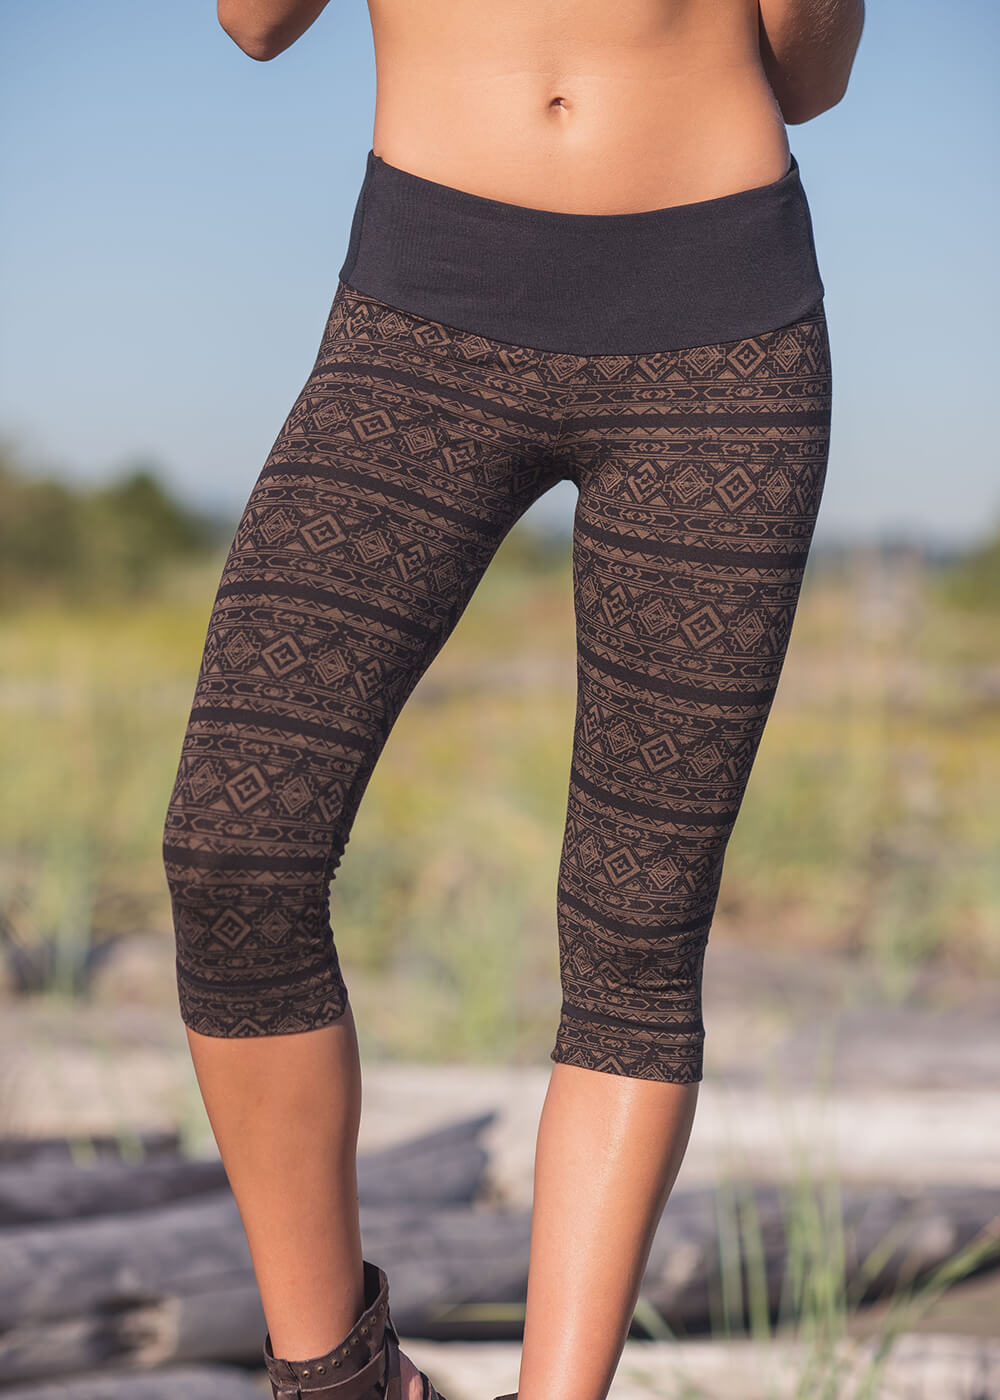 Organic cotton and bamboo 3/4 printed leggings with wide waistband on model, by Nomads Hemp Wear.